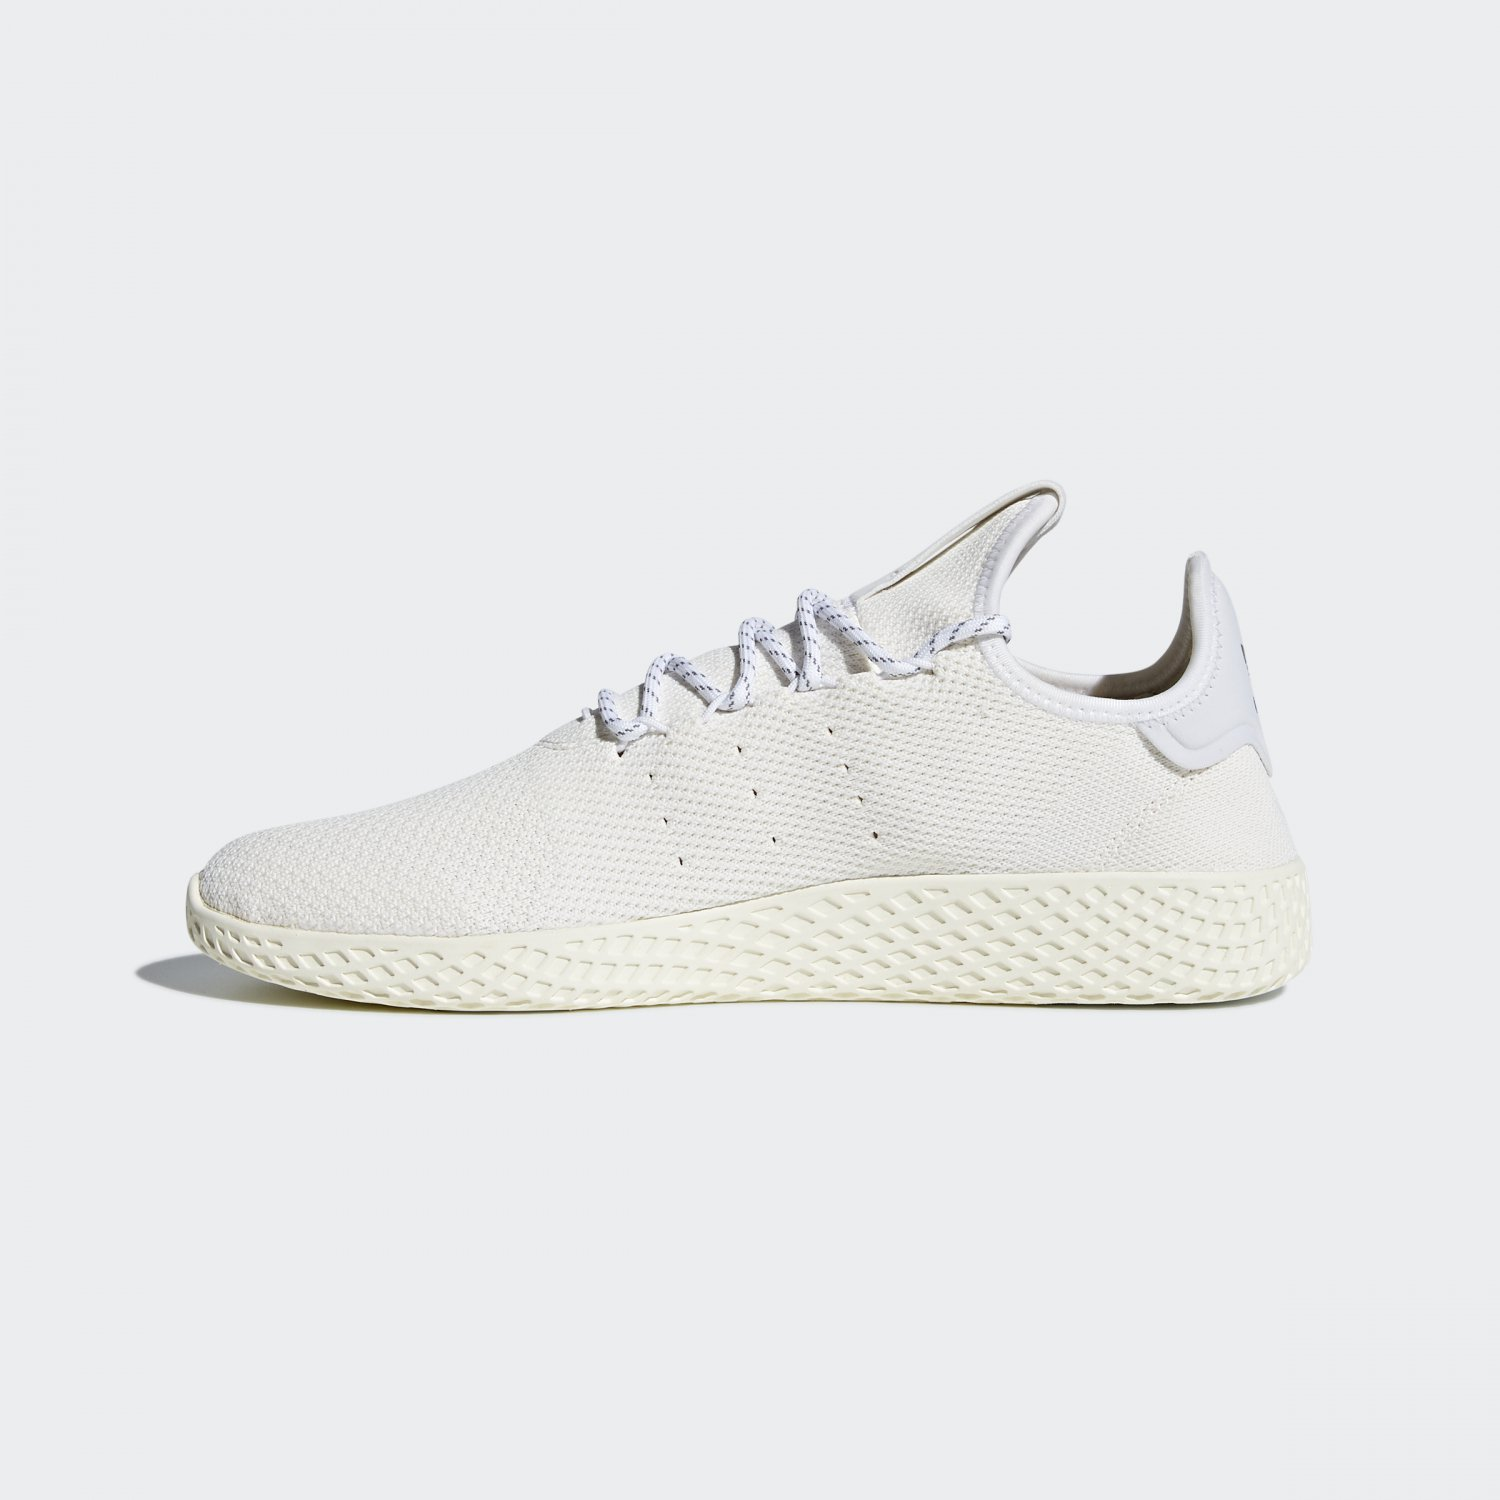 pharrell-williams-adidas-tennis-hu-blank-canvas-da9613-release-20180223